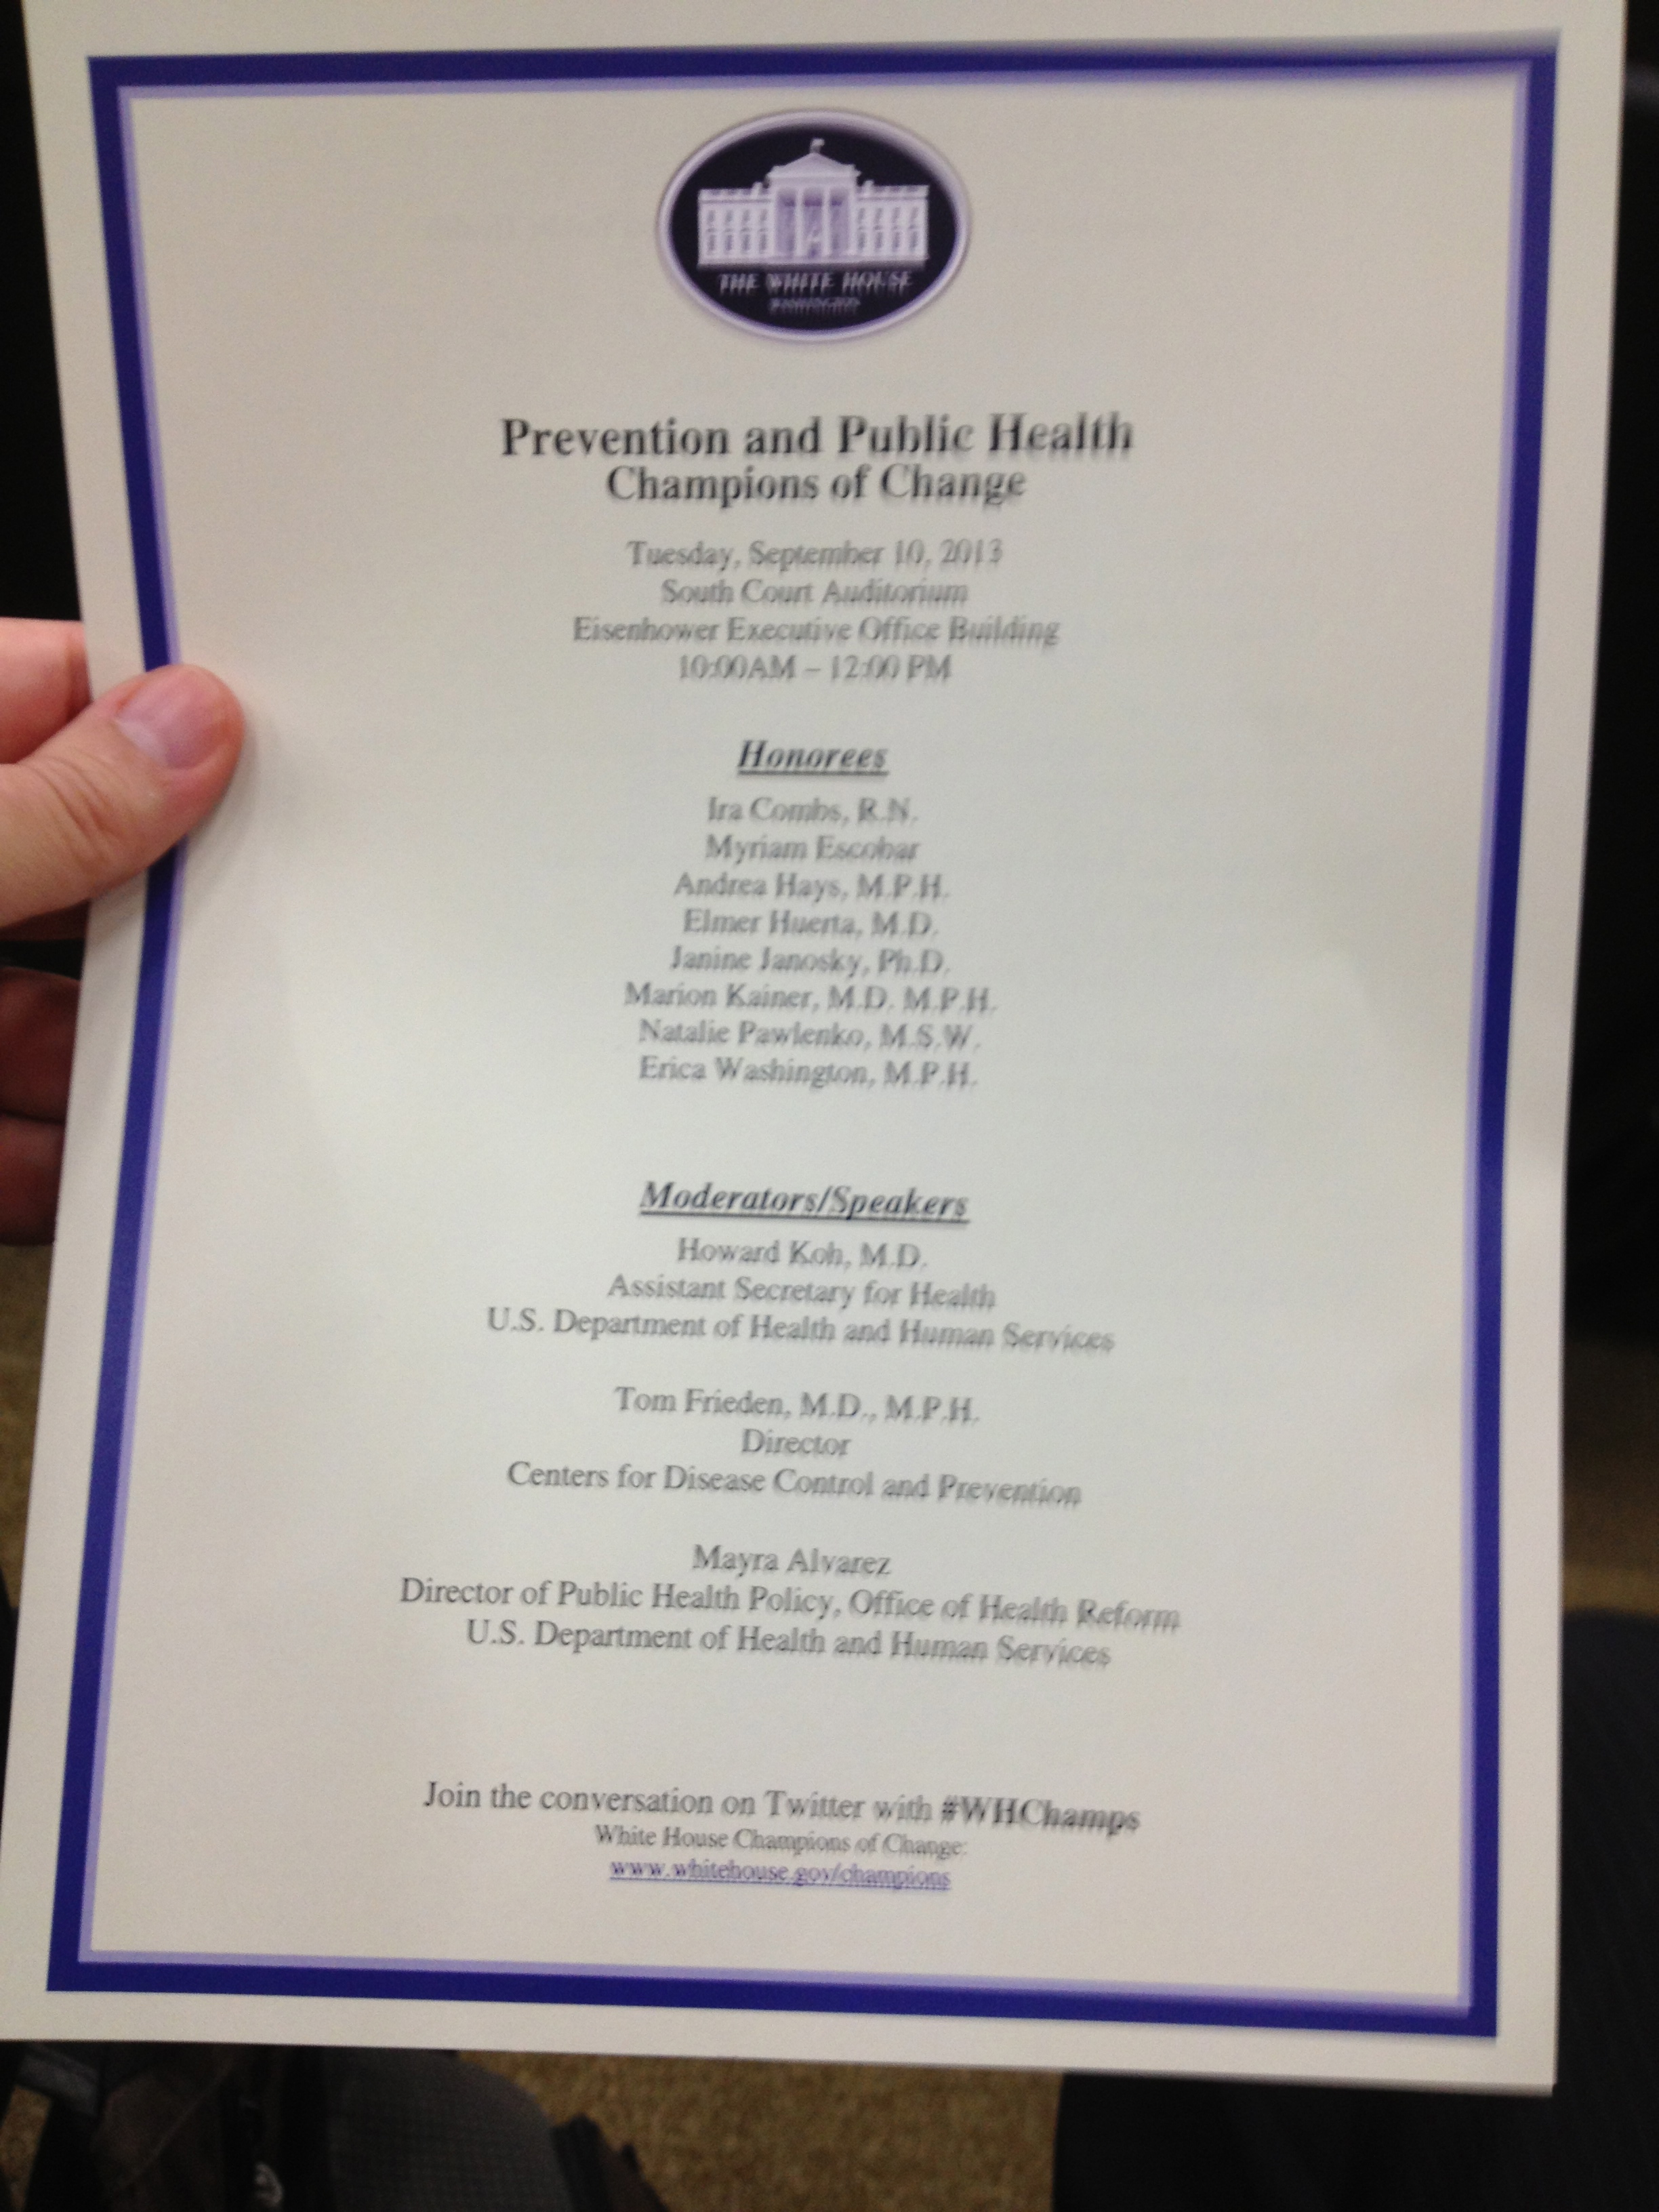 White House Champions of Change in Public Health and Prevention